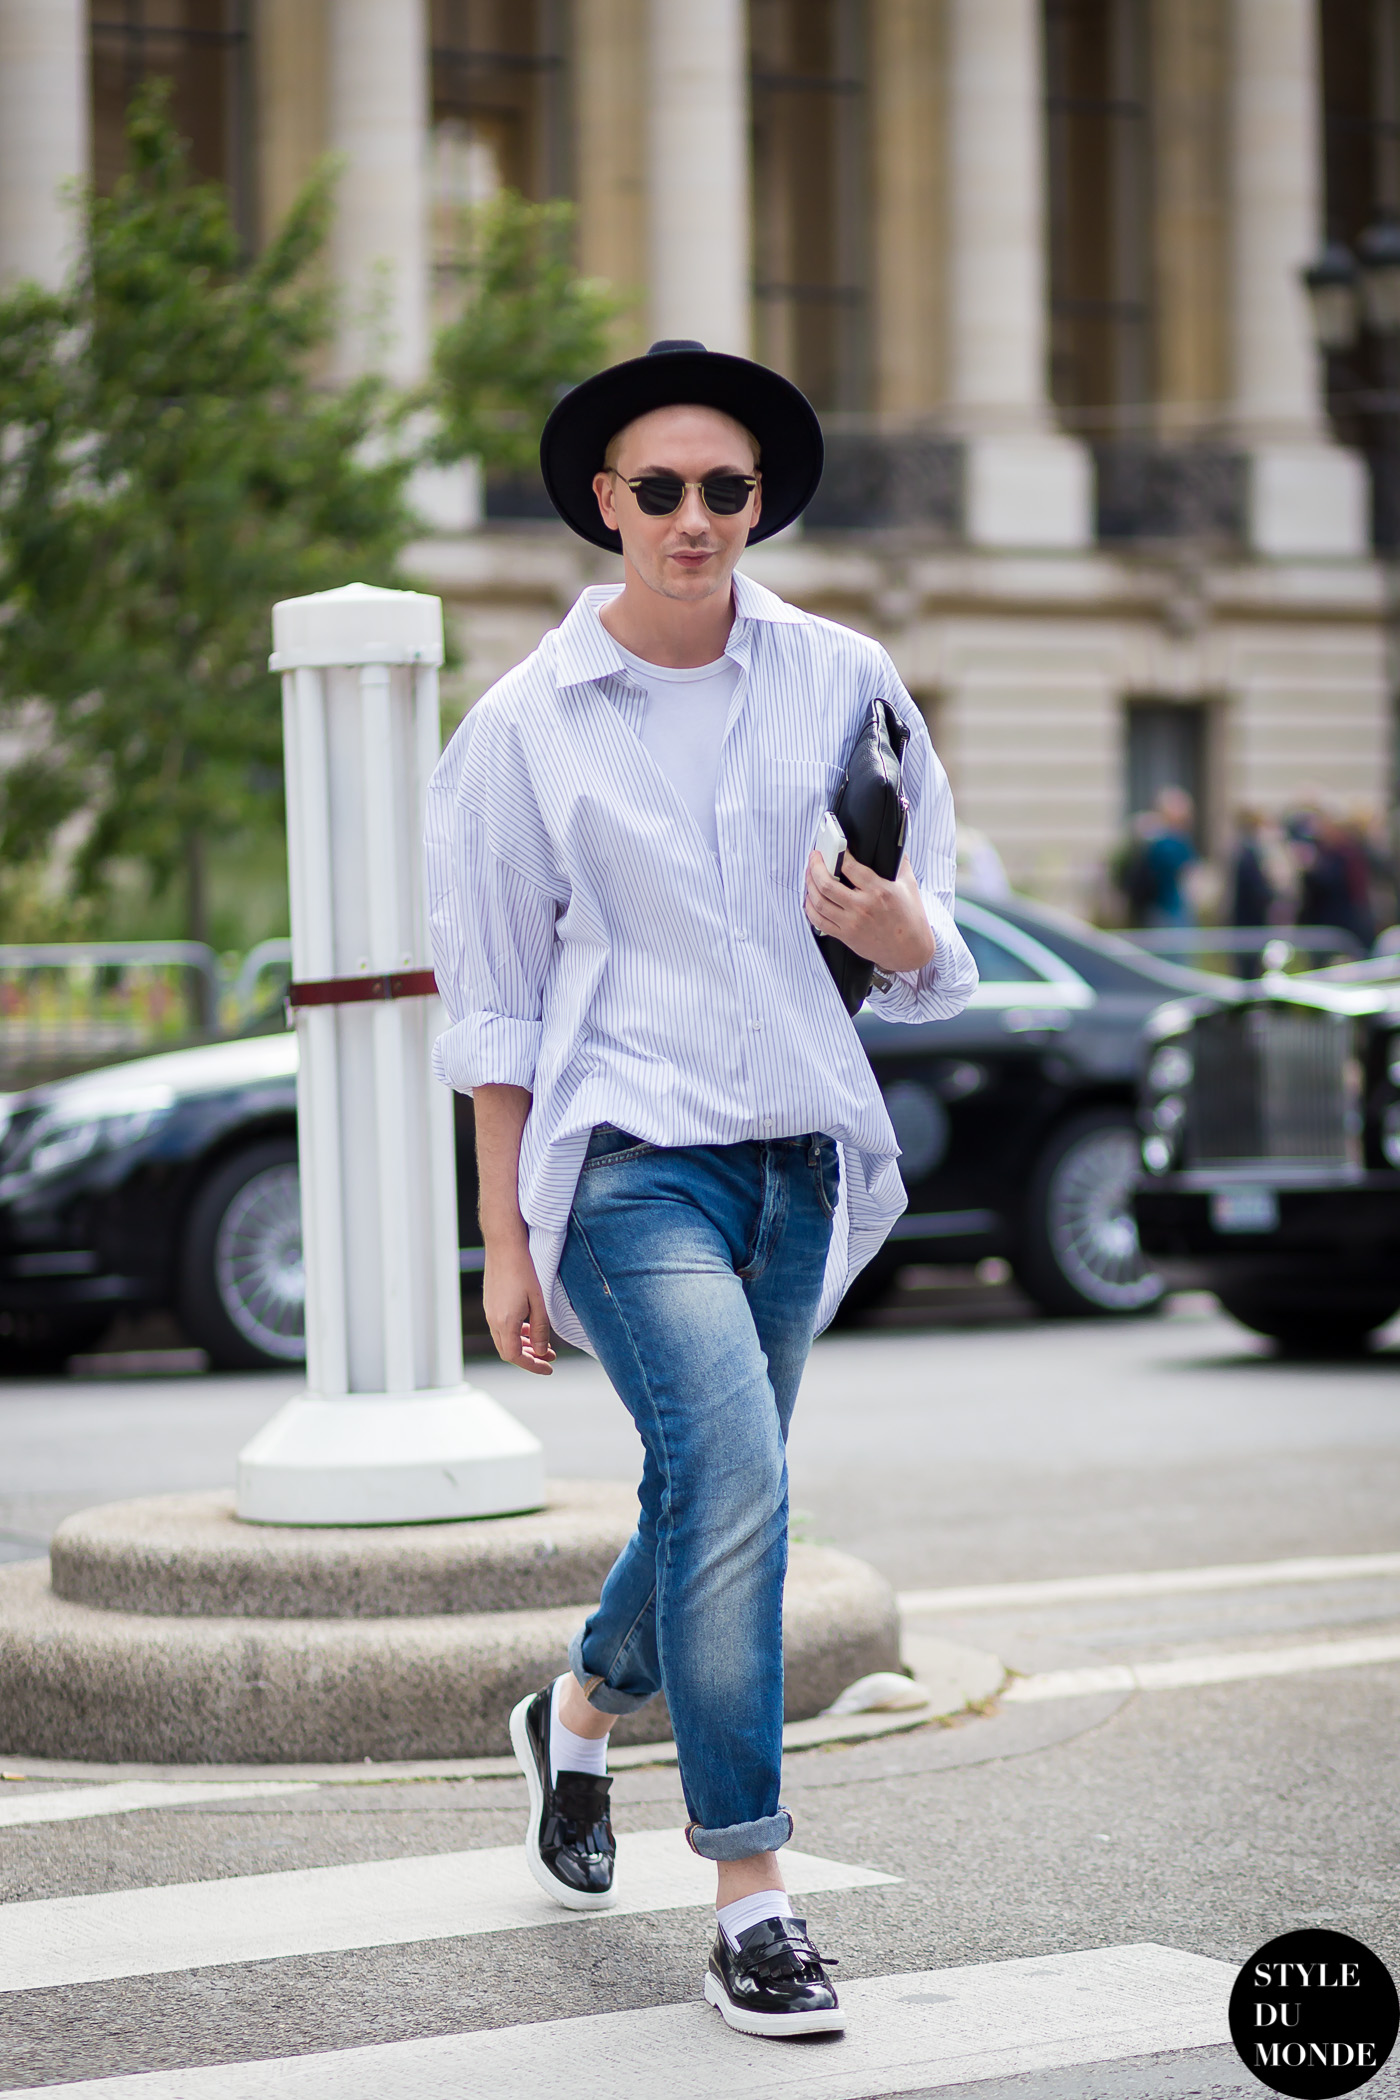 Stas Karavayev Street Style Street Fashion by STYLEDUMONDE Street Style Fashion Blog